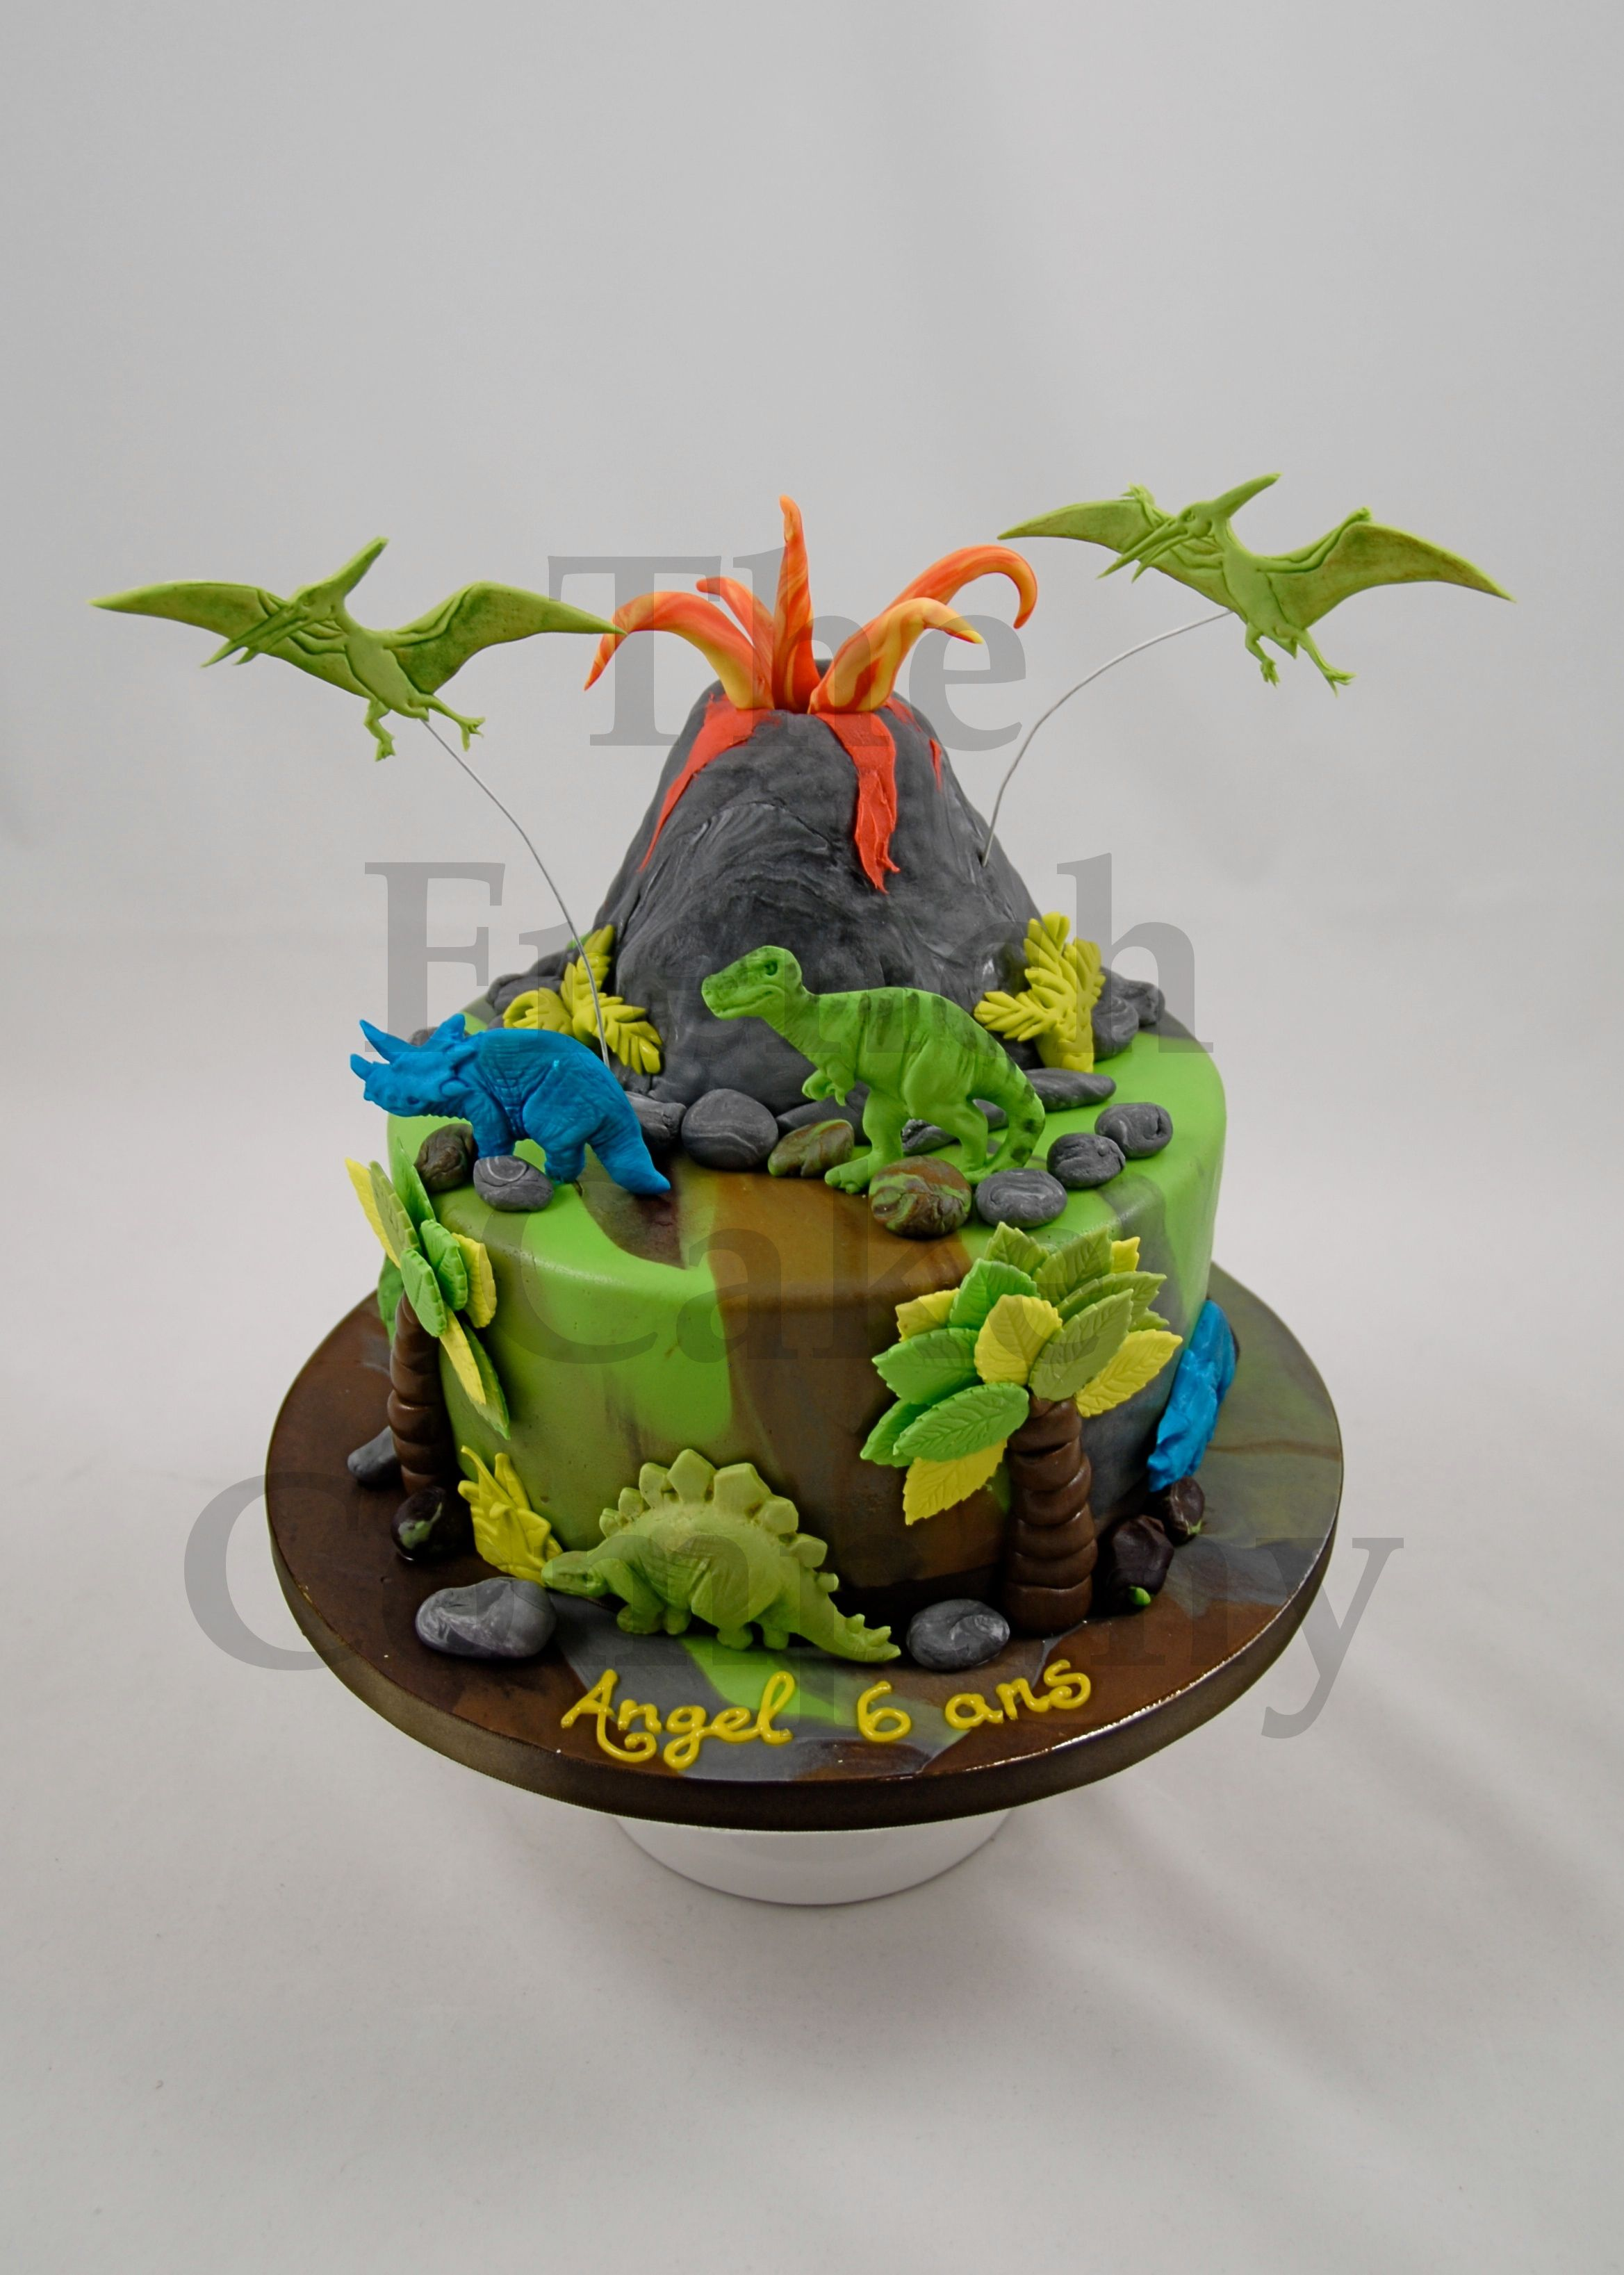 cake for boys dinosaur gateau d 39 anniversaire pour enfants garcon dinosaure verjaardagstaart. Black Bedroom Furniture Sets. Home Design Ideas